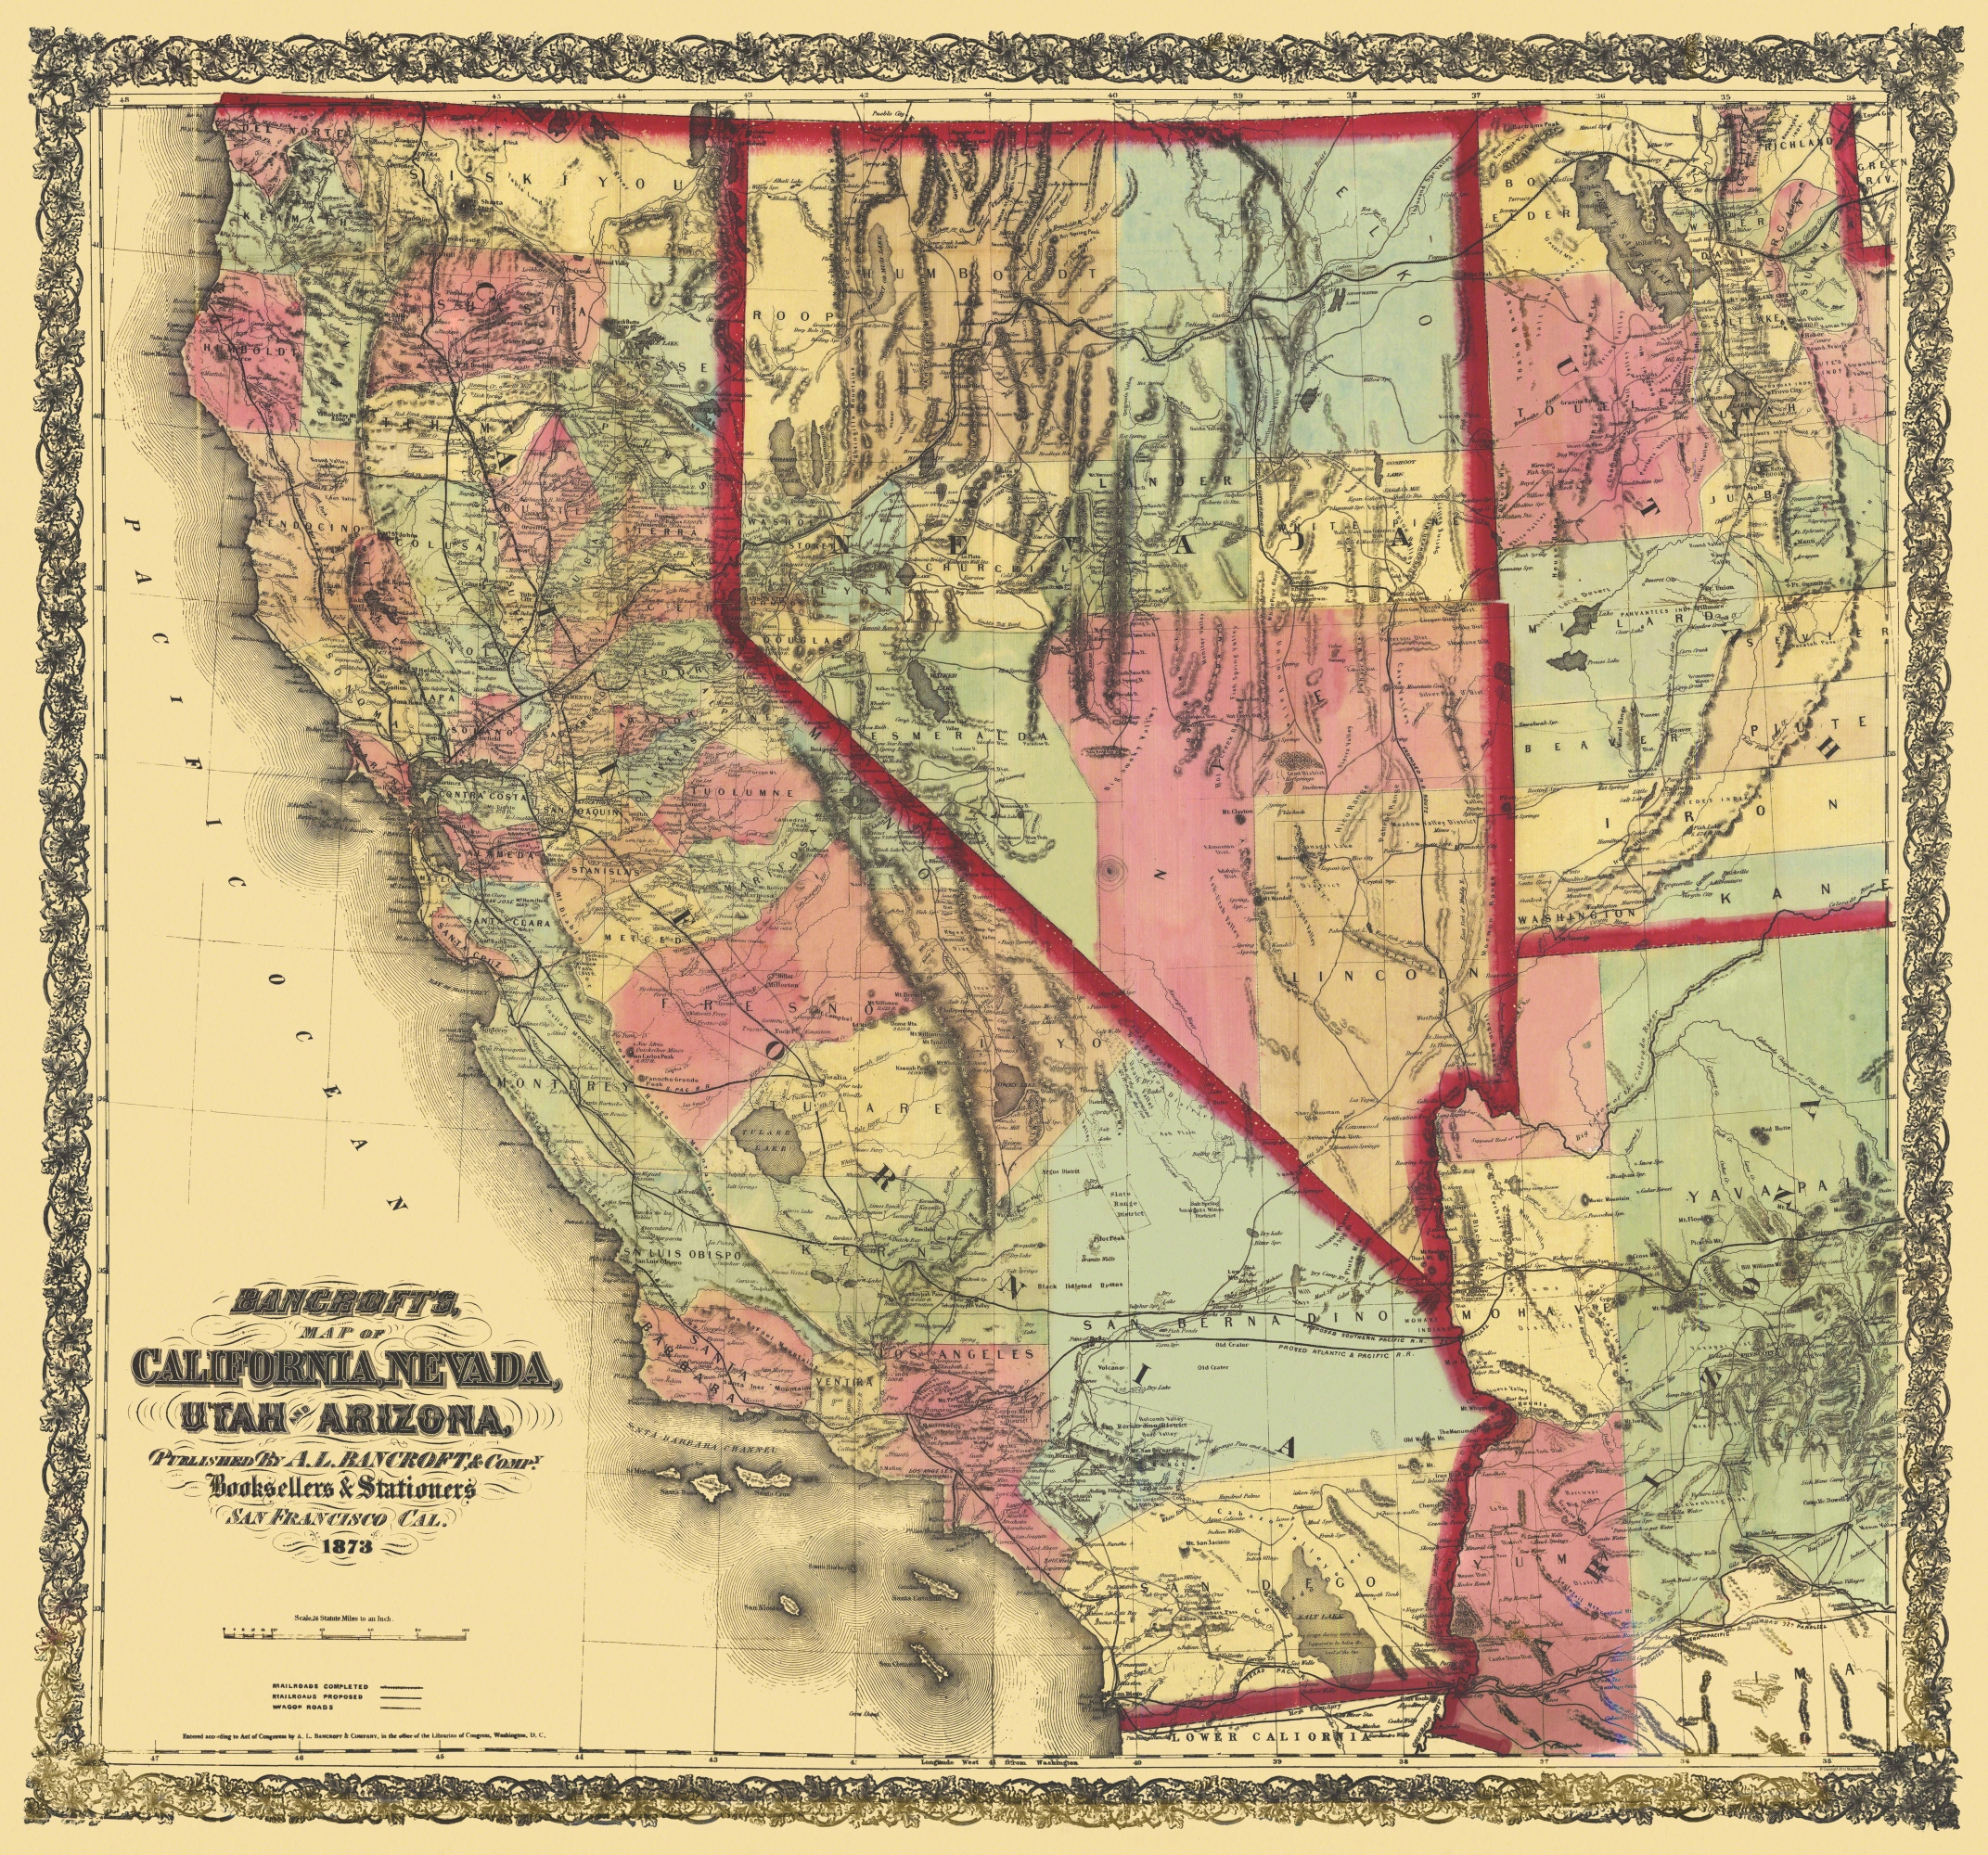 Old State Map - California, Nevada, Utah, Arizona 1873 - California Nevada Map